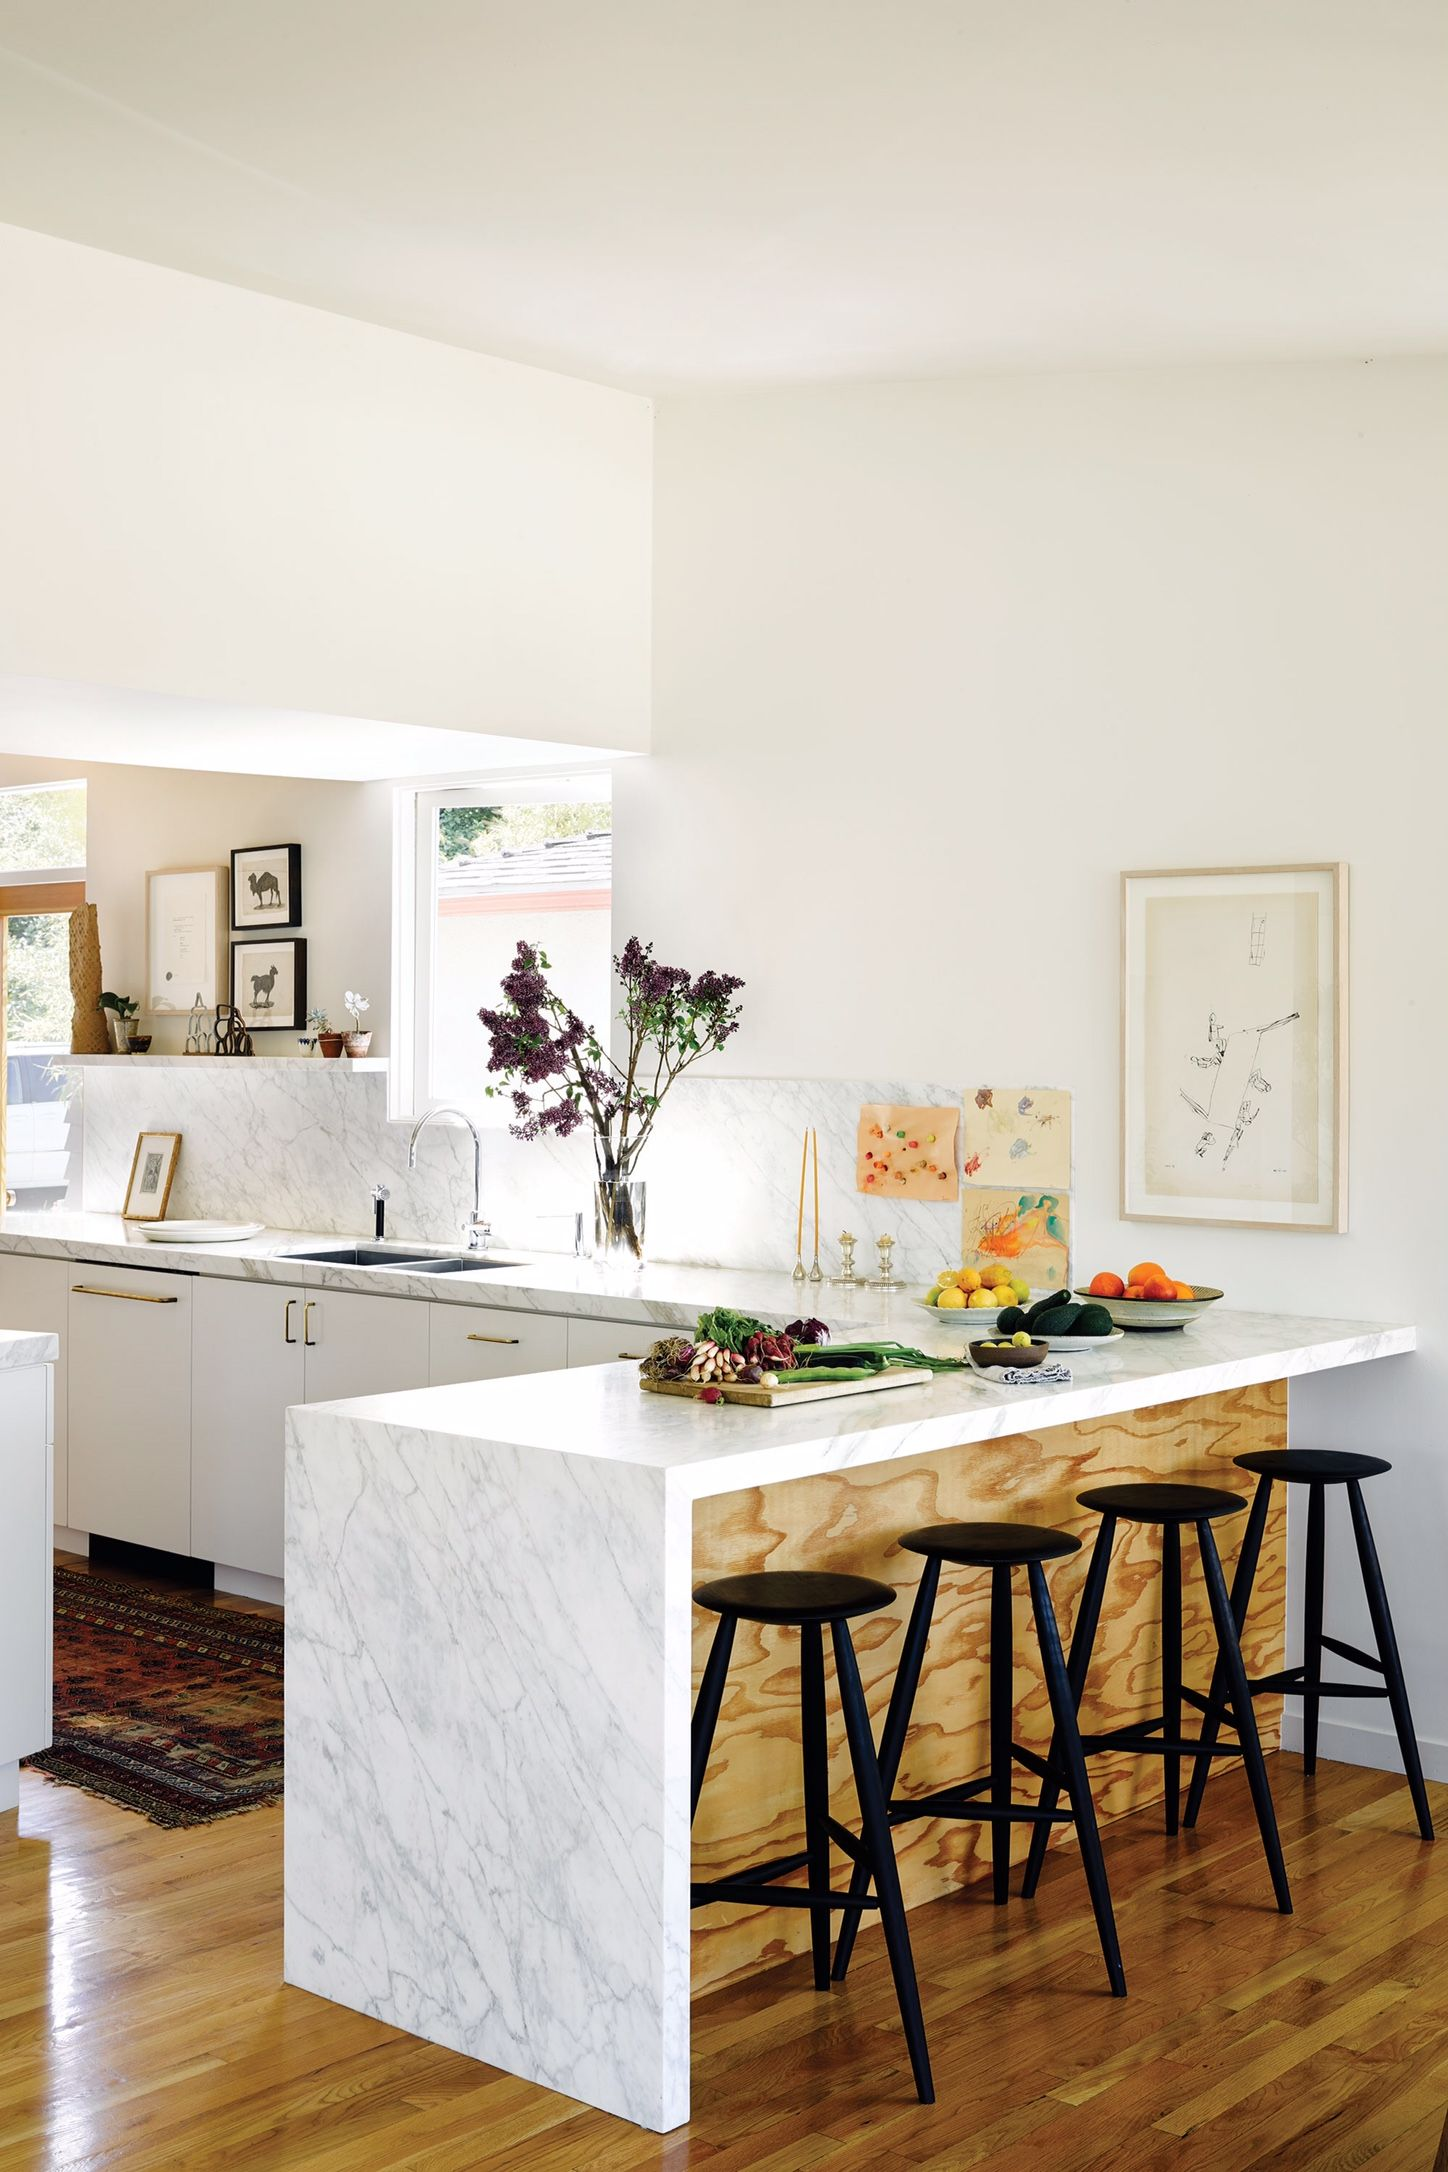 Choose Carrara Kitchen Countertops, Black Chairs, Wood Flooring For Your  Favorite Home Space.